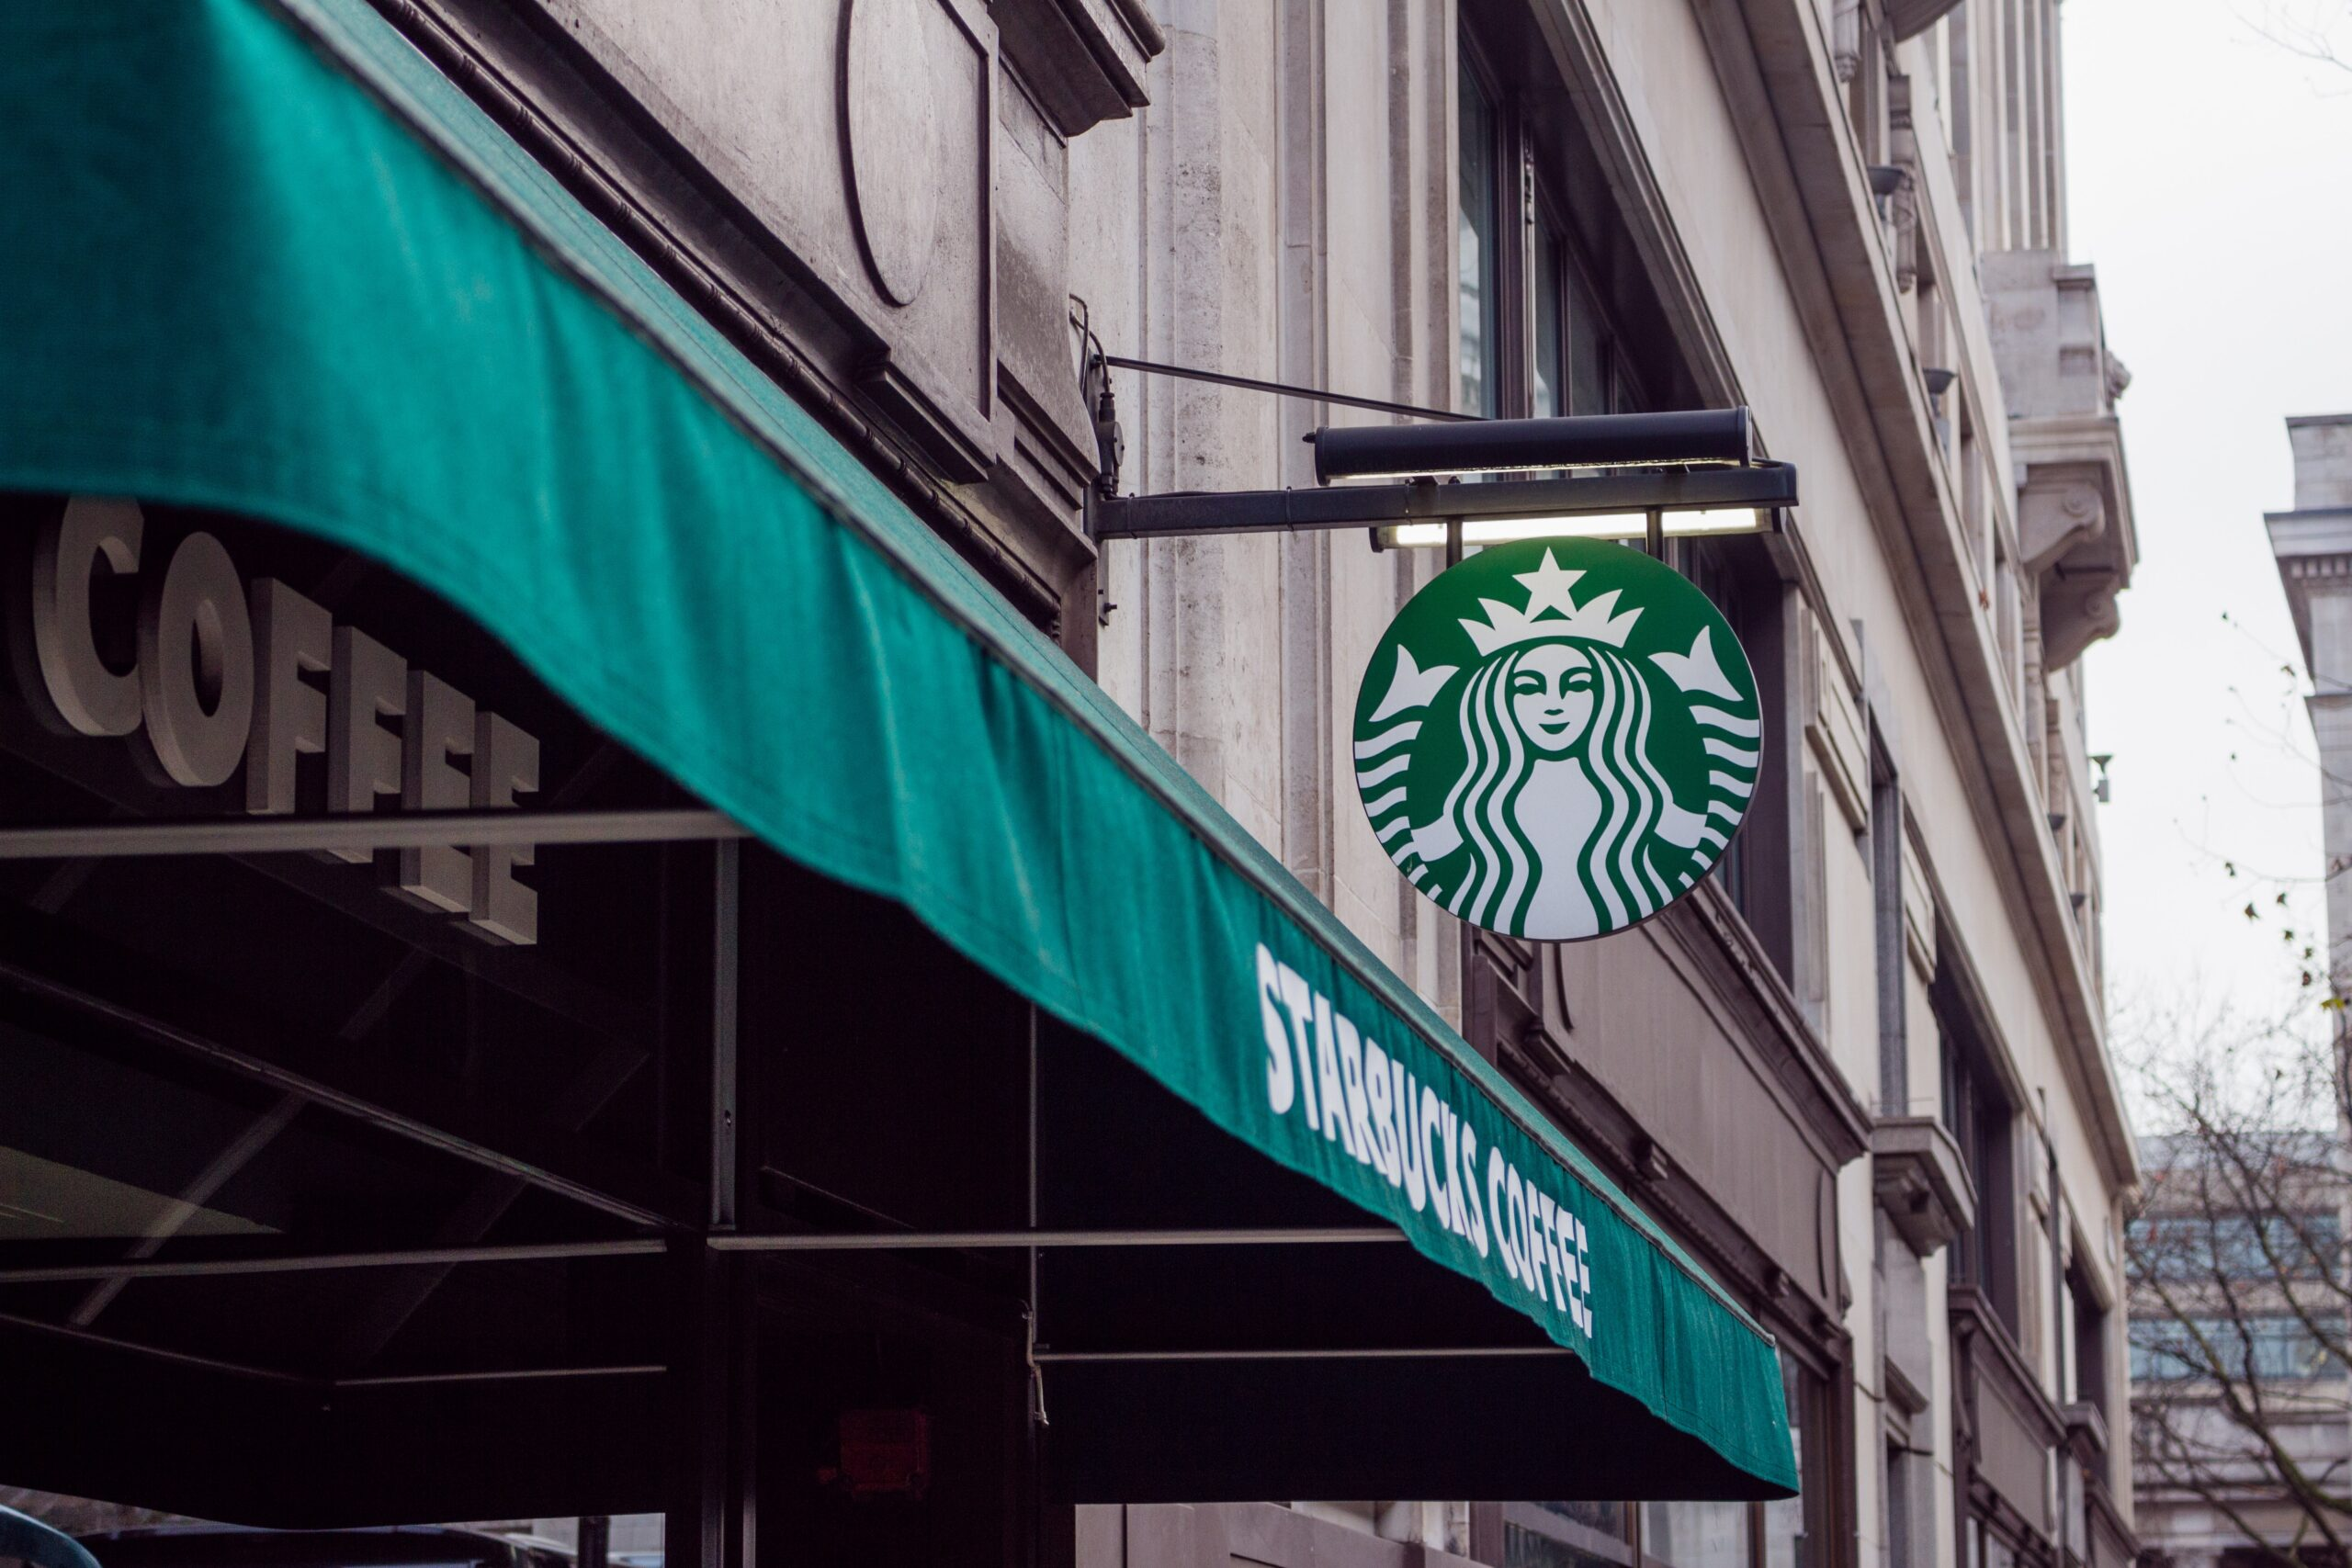 starbucks store awning and sign